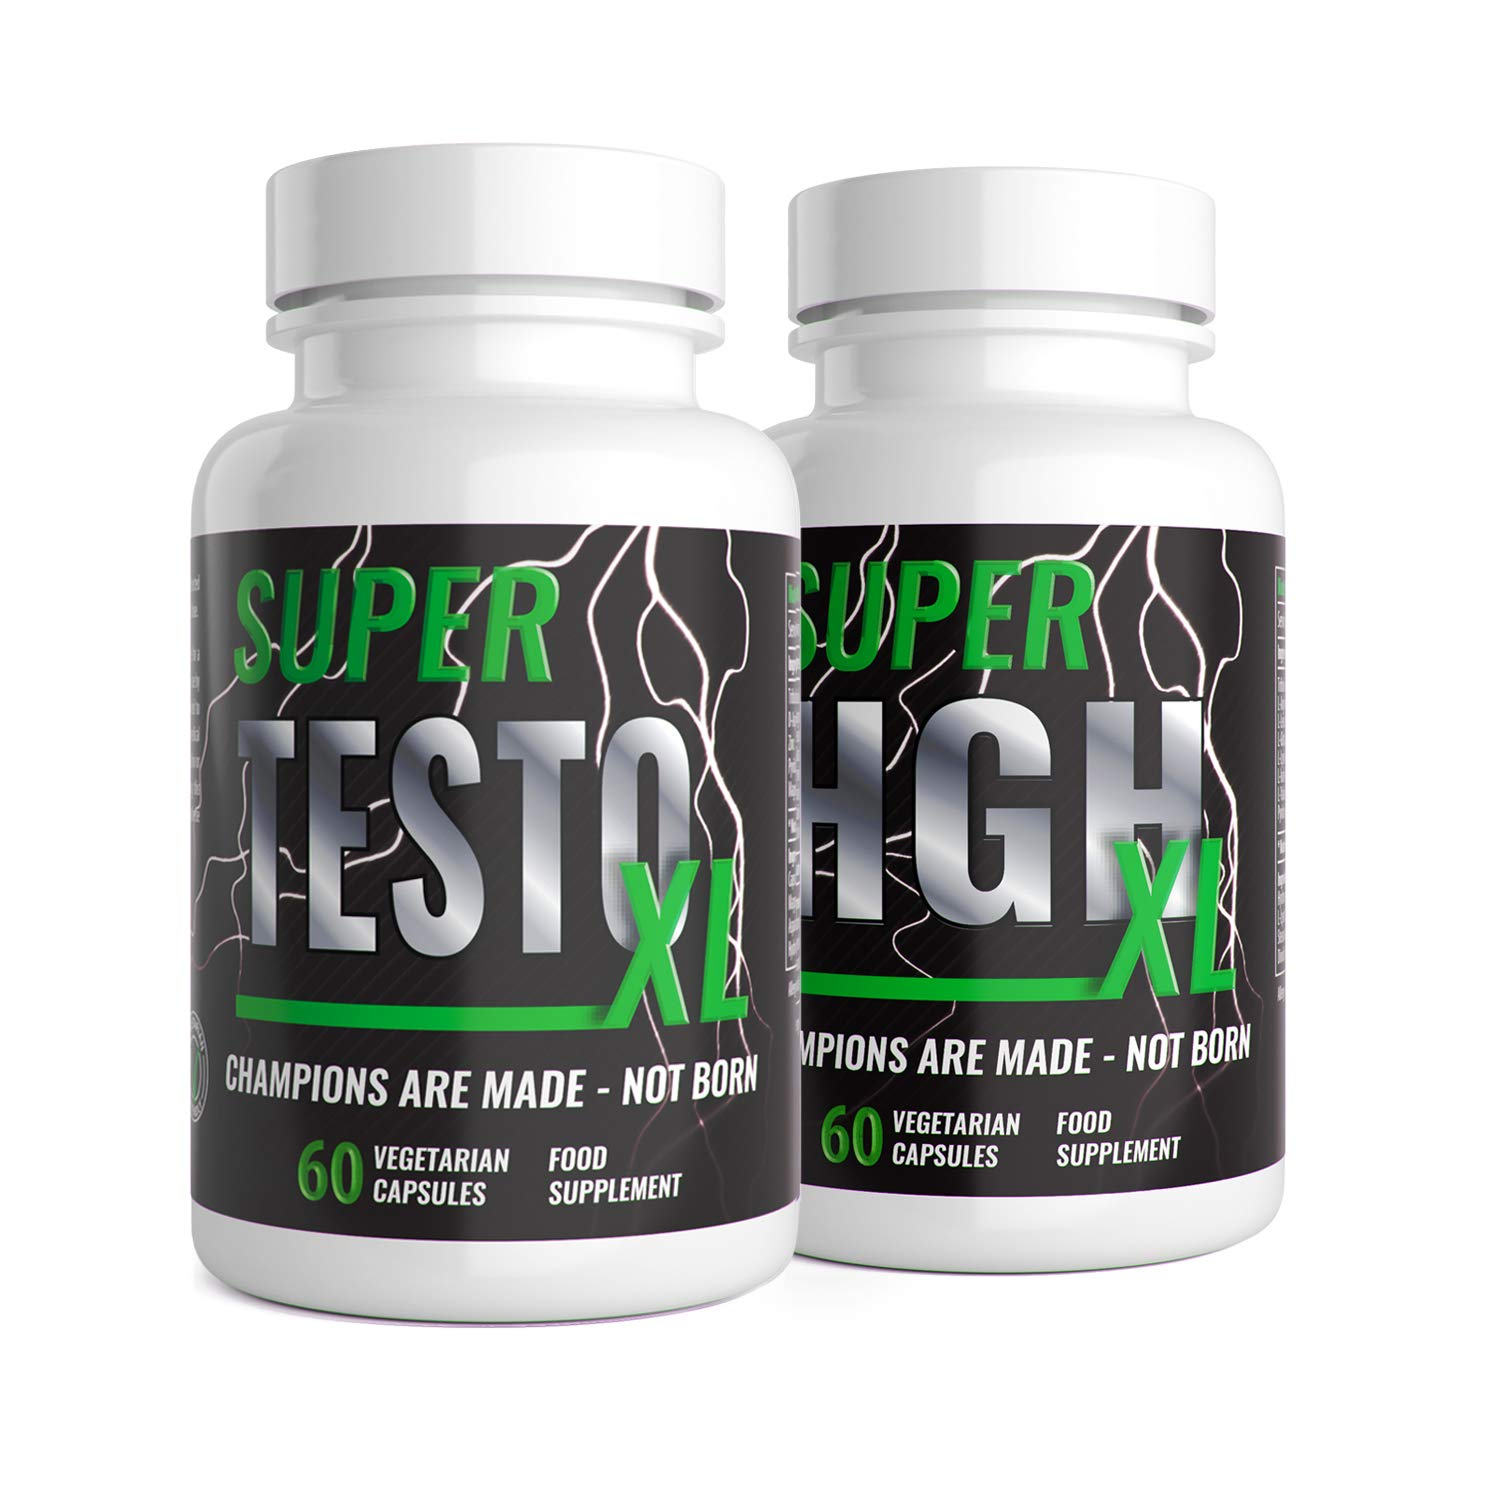 f0014fd1639 Super Testo XL & Super HGH XL - 1 Month Supply - Supplement Bundle - 60  Capsules - UK Manufactured by Natural Answers: Amazon.co.uk: Health &  Personal Care